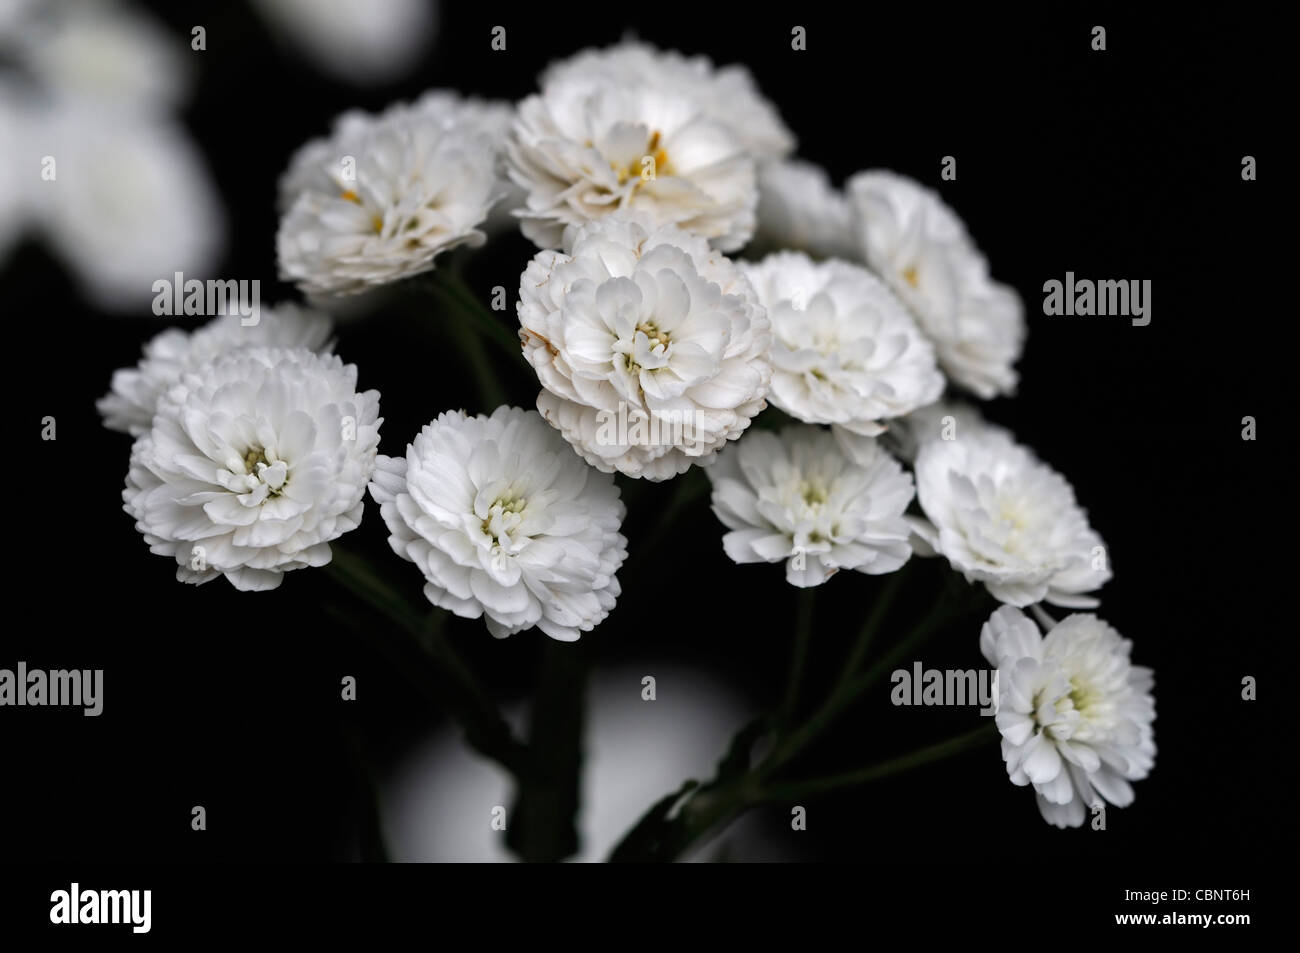 Tall White Flowers Stock Photos Tall White Flowers Stock Images